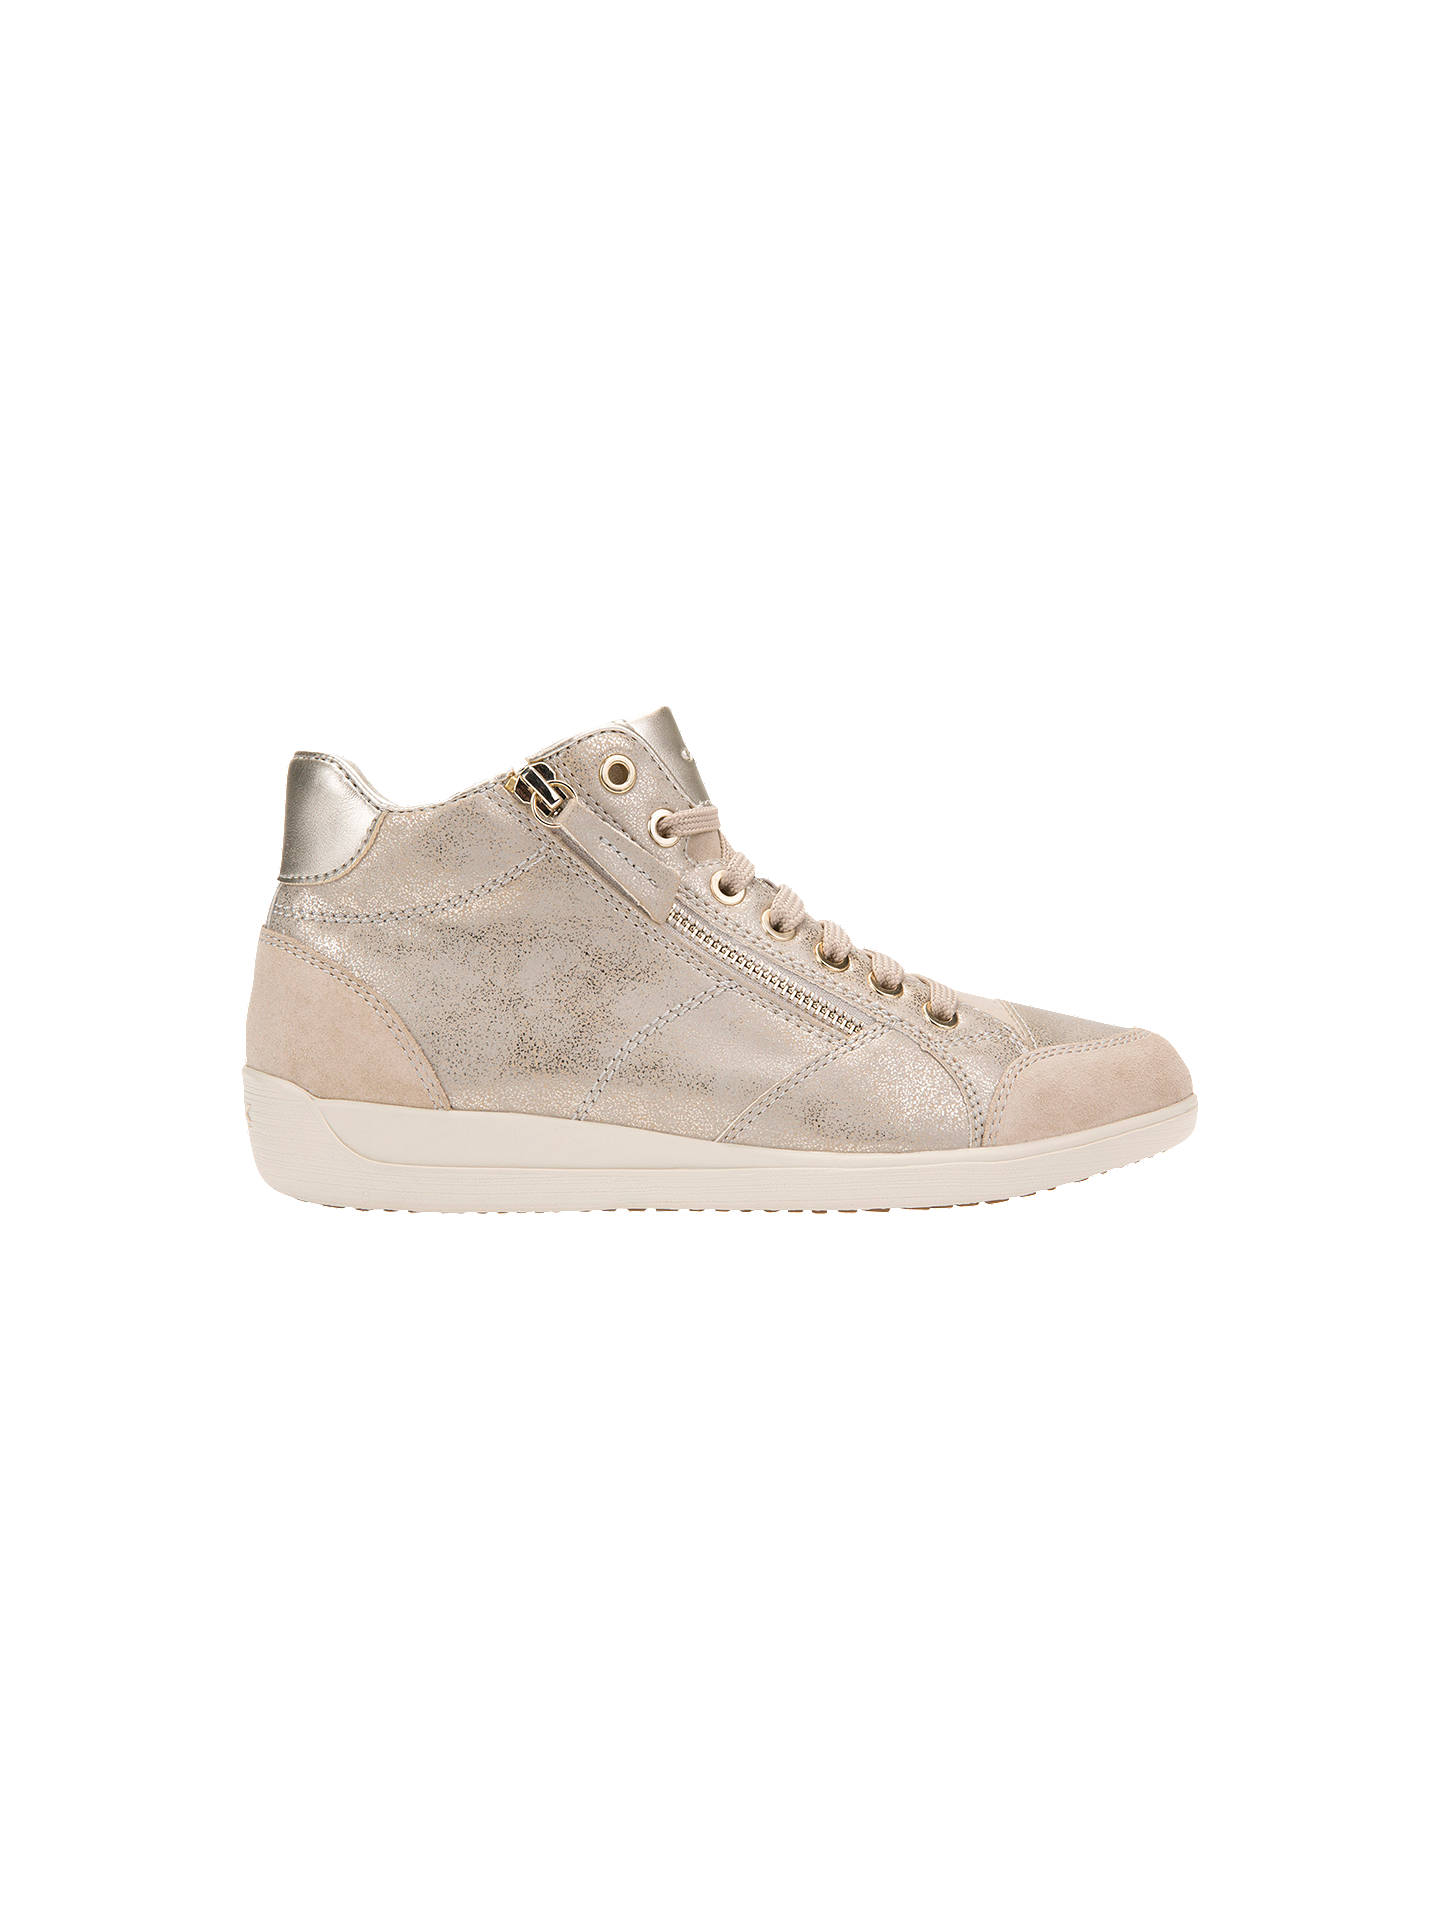 Geox Women's Myria High Top Lace Up Trainers, Taupe at John